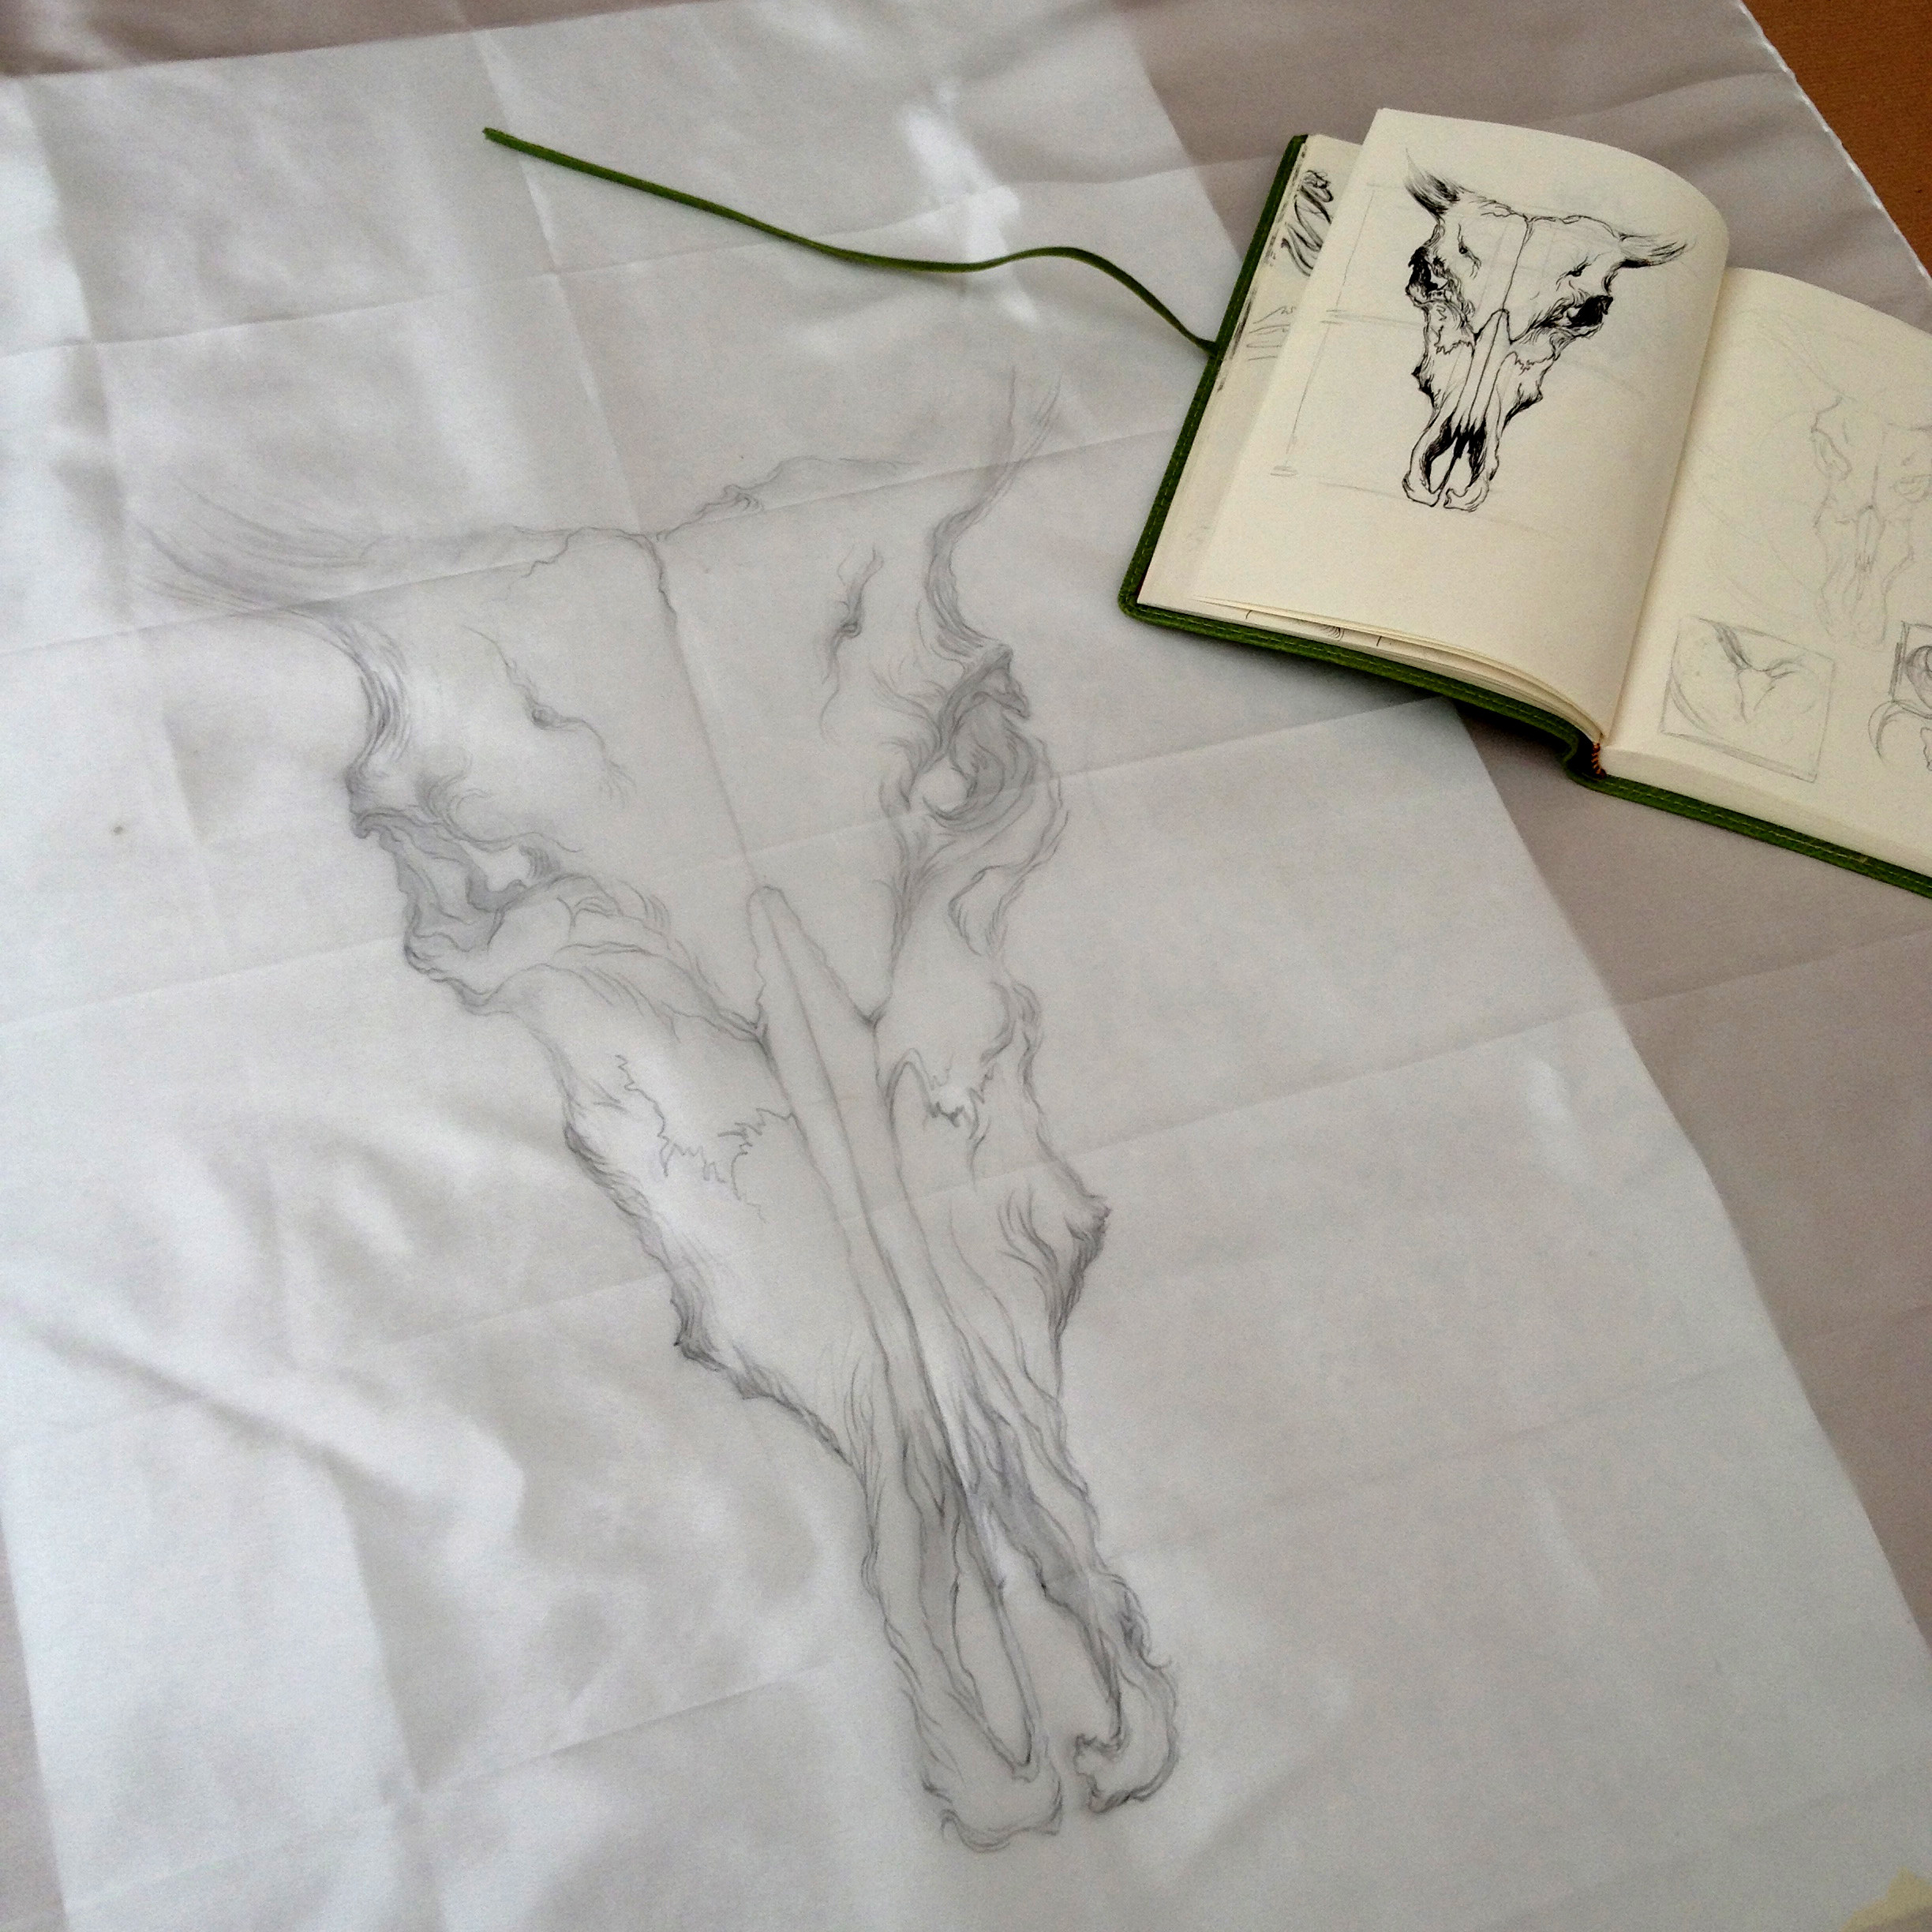 Drawing out initial design on the silk